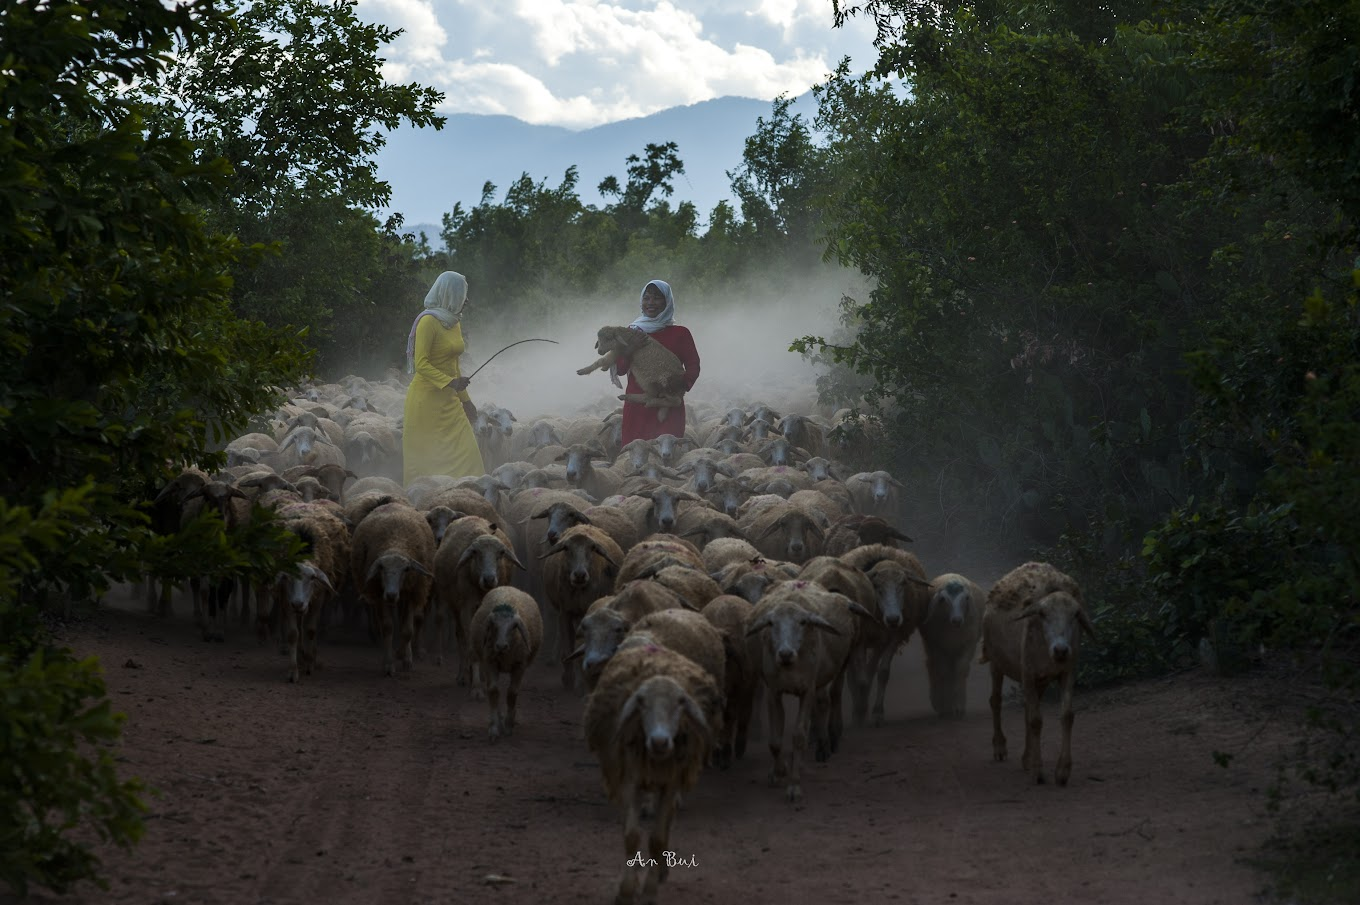 Photo shooting of thousands of sheep going home